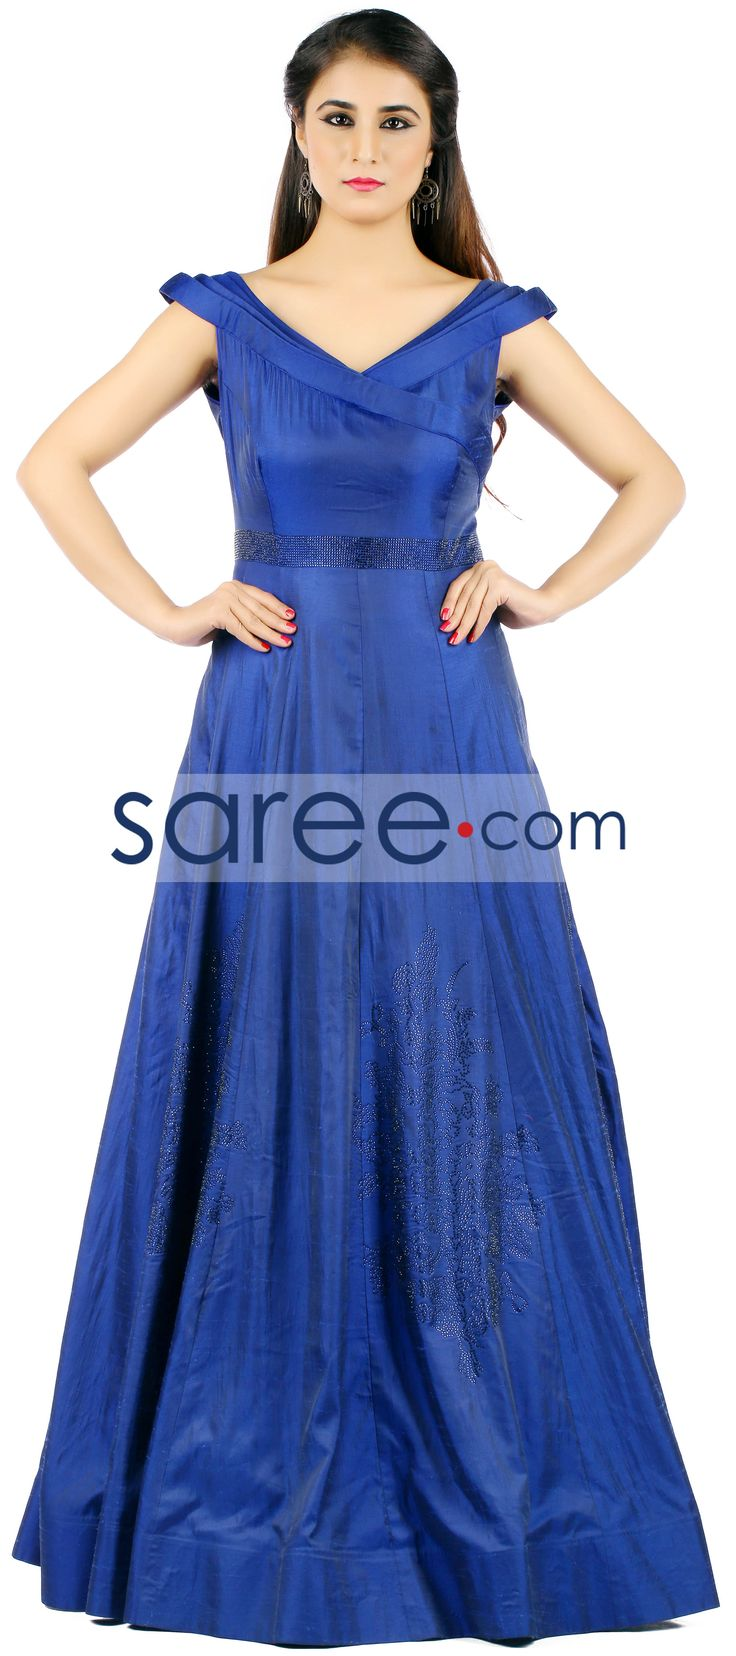 BLUE SILK GOWN WITH STONE WORK   #Gown #PartywearGown #ReceptionGown #IndoWestern #IndoWesternGown